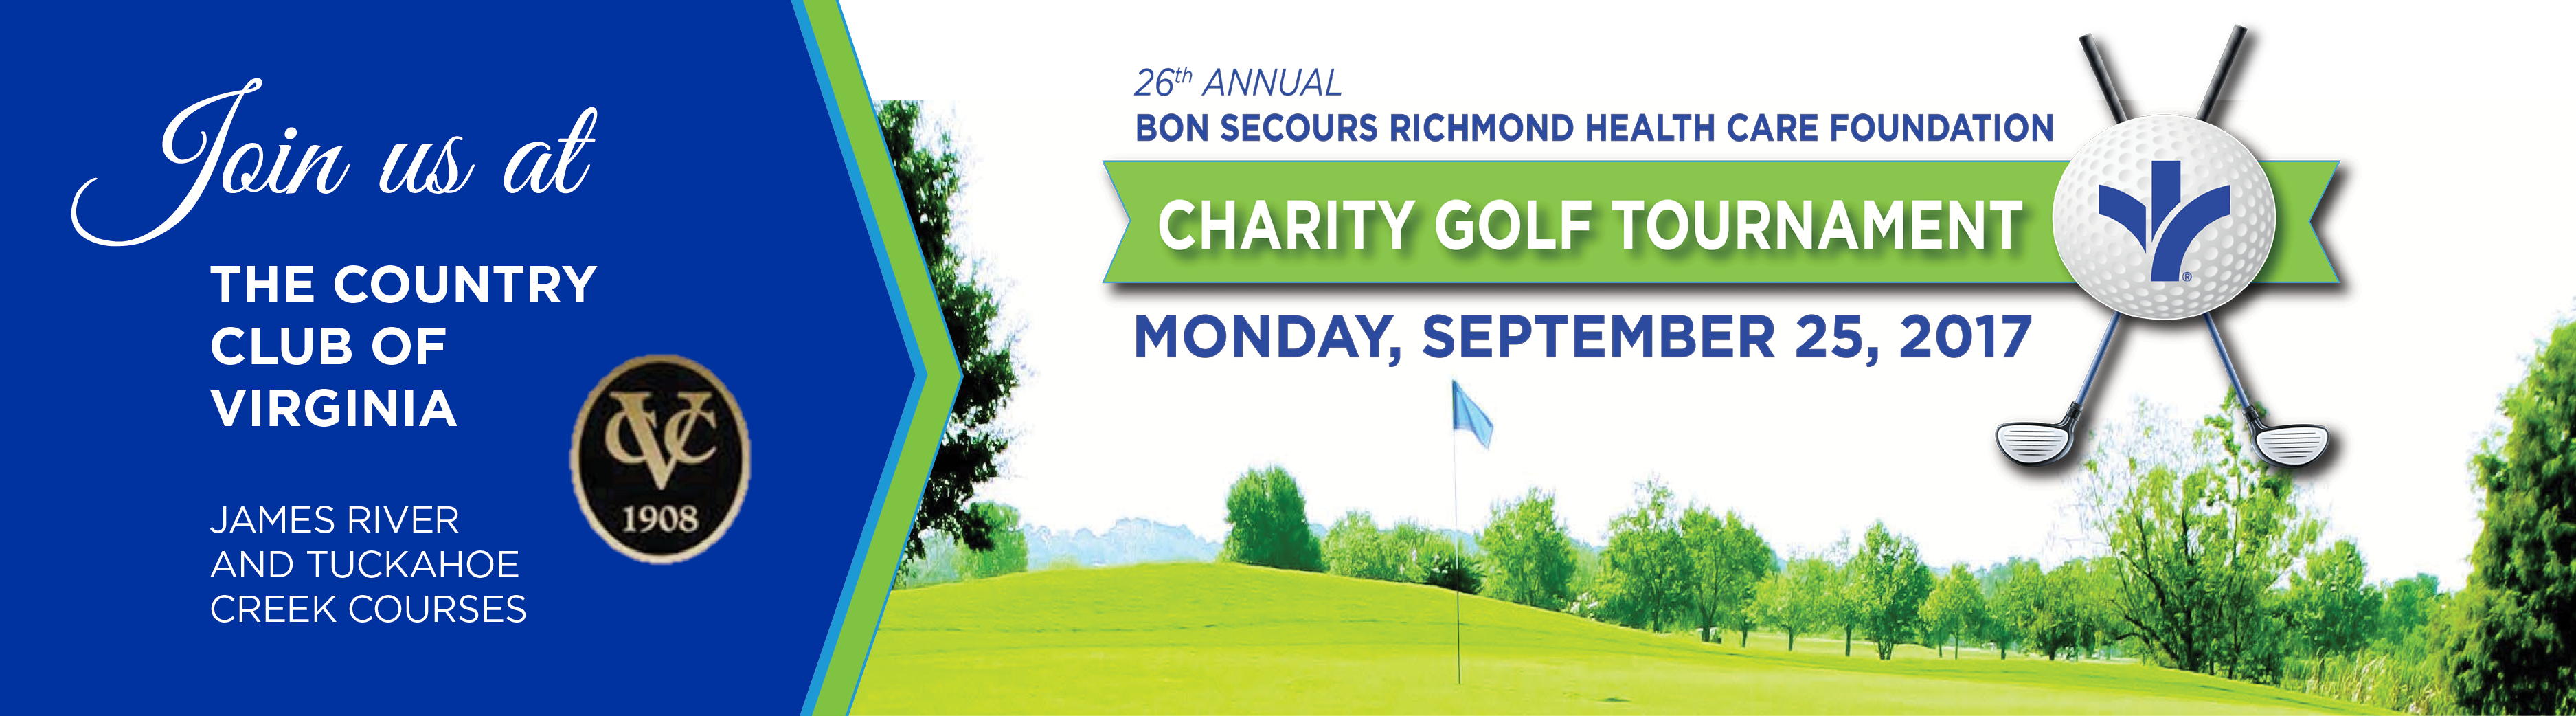 2016 Bon Secours Richmond Golf Tournament